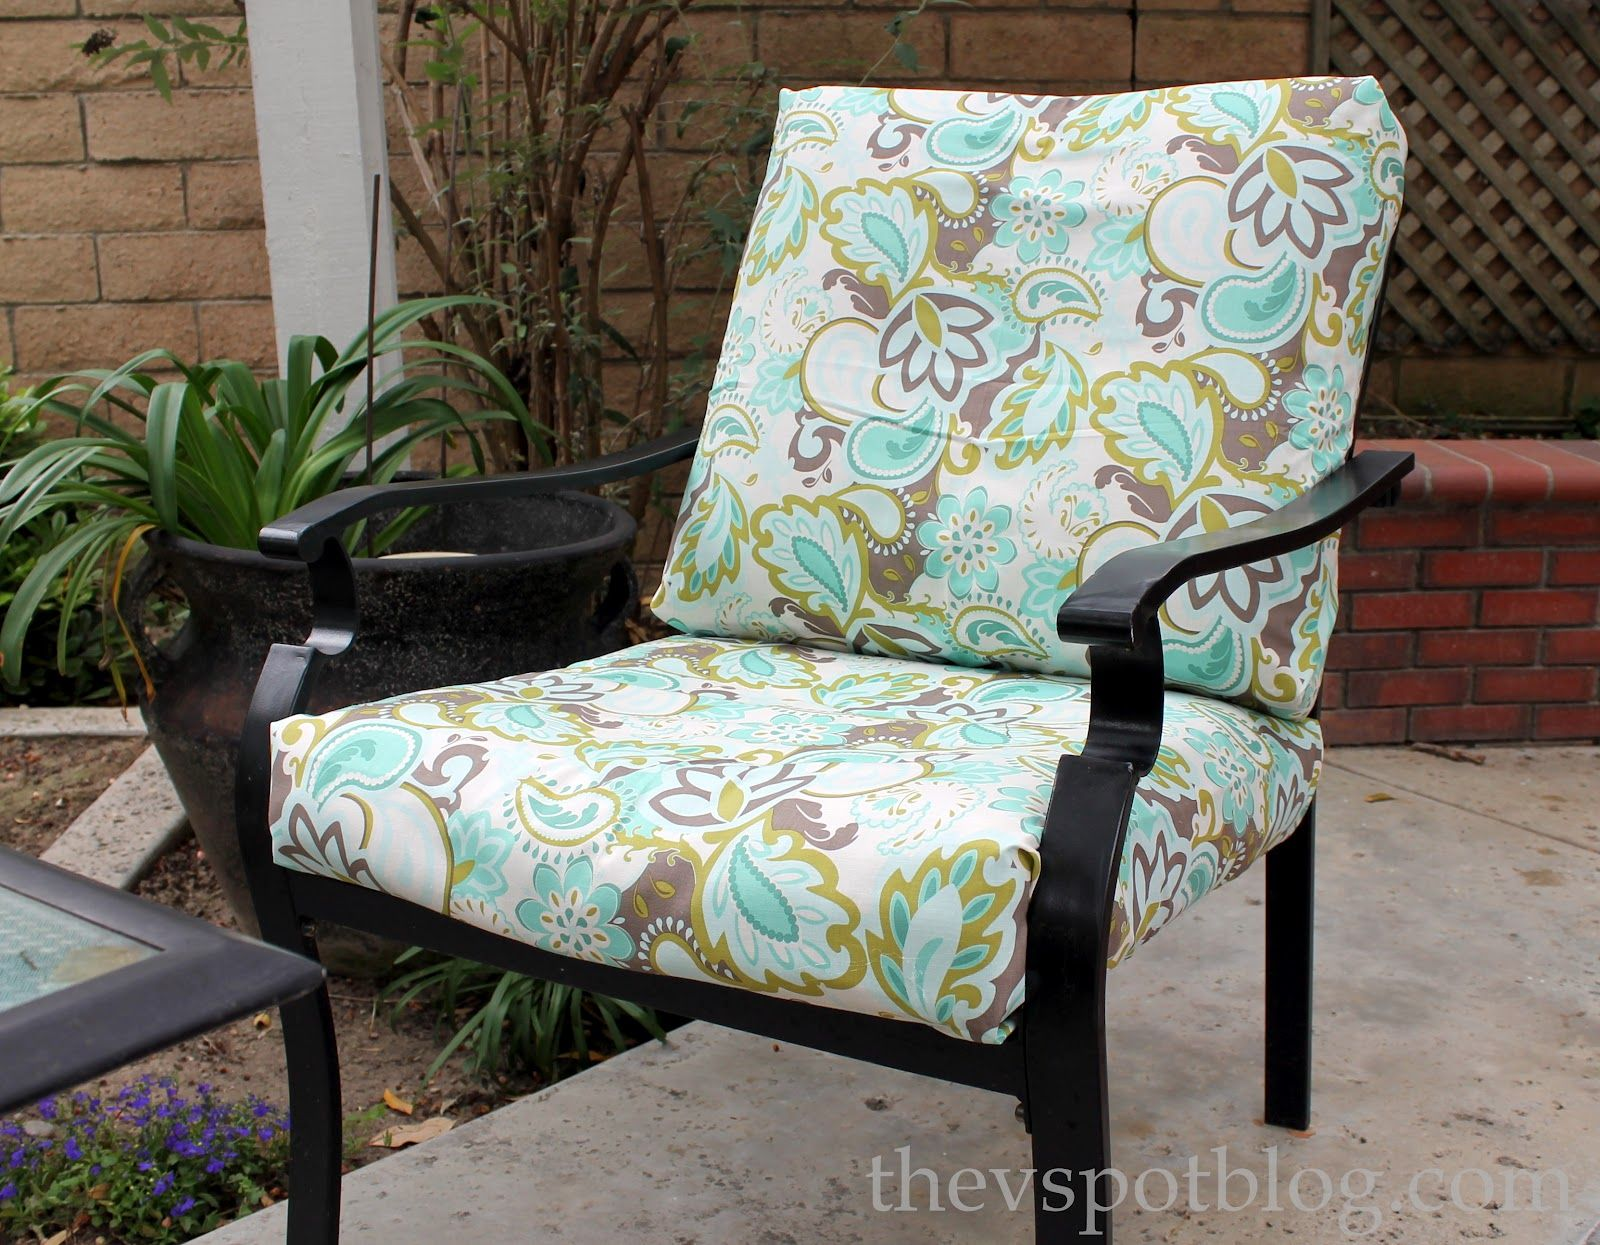 Superieur No Sew Project: How To Recover Your Outdoor Cushions Using Fabric And A  Glue Gun. » The V Spot